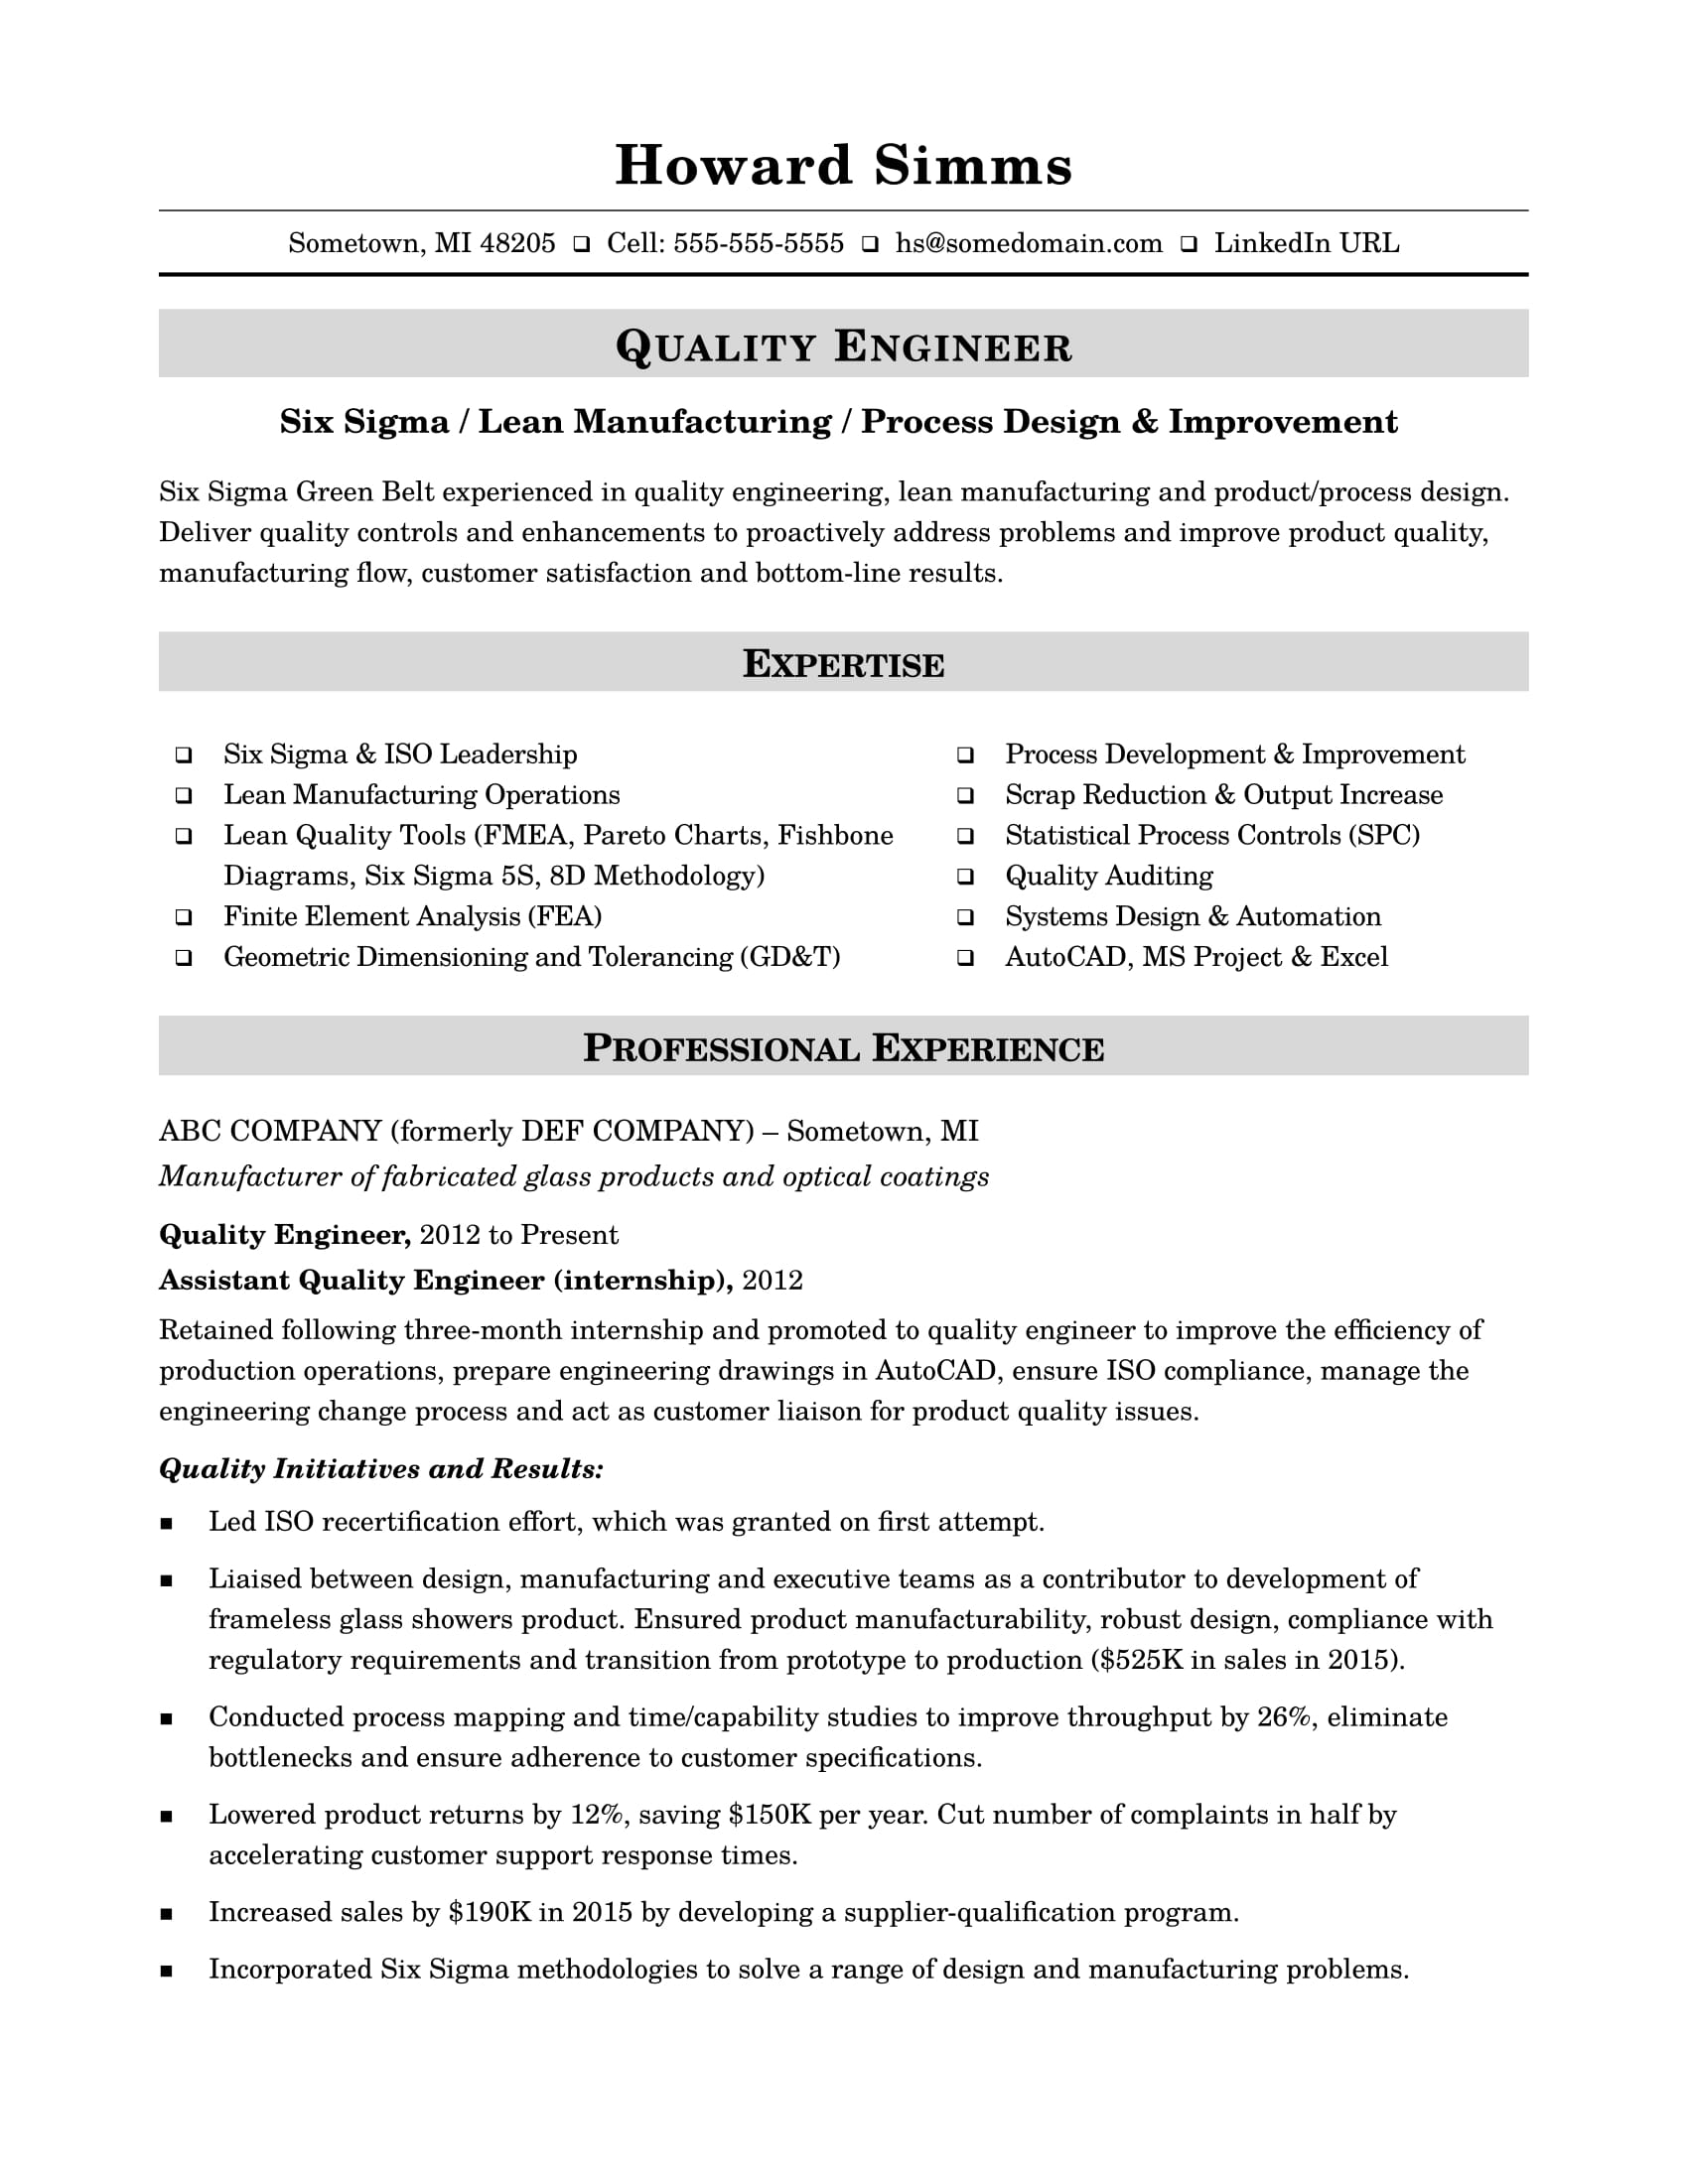 Sample Resume For A Midlevel Quality Engineer Monster